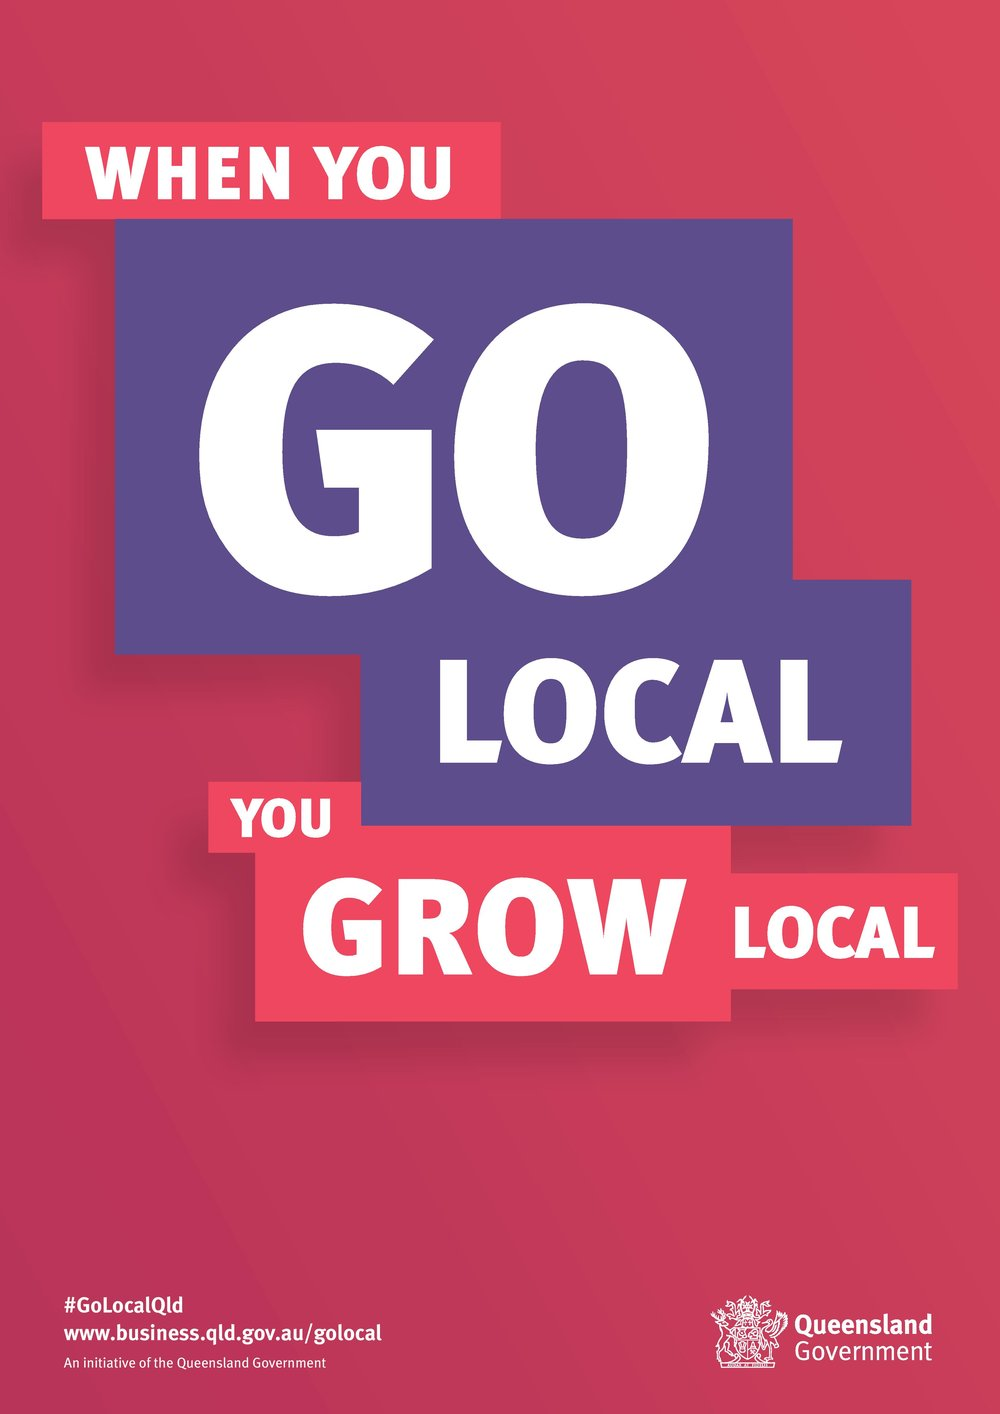 go-local-grow-local-poster (1)-page-001.jpg